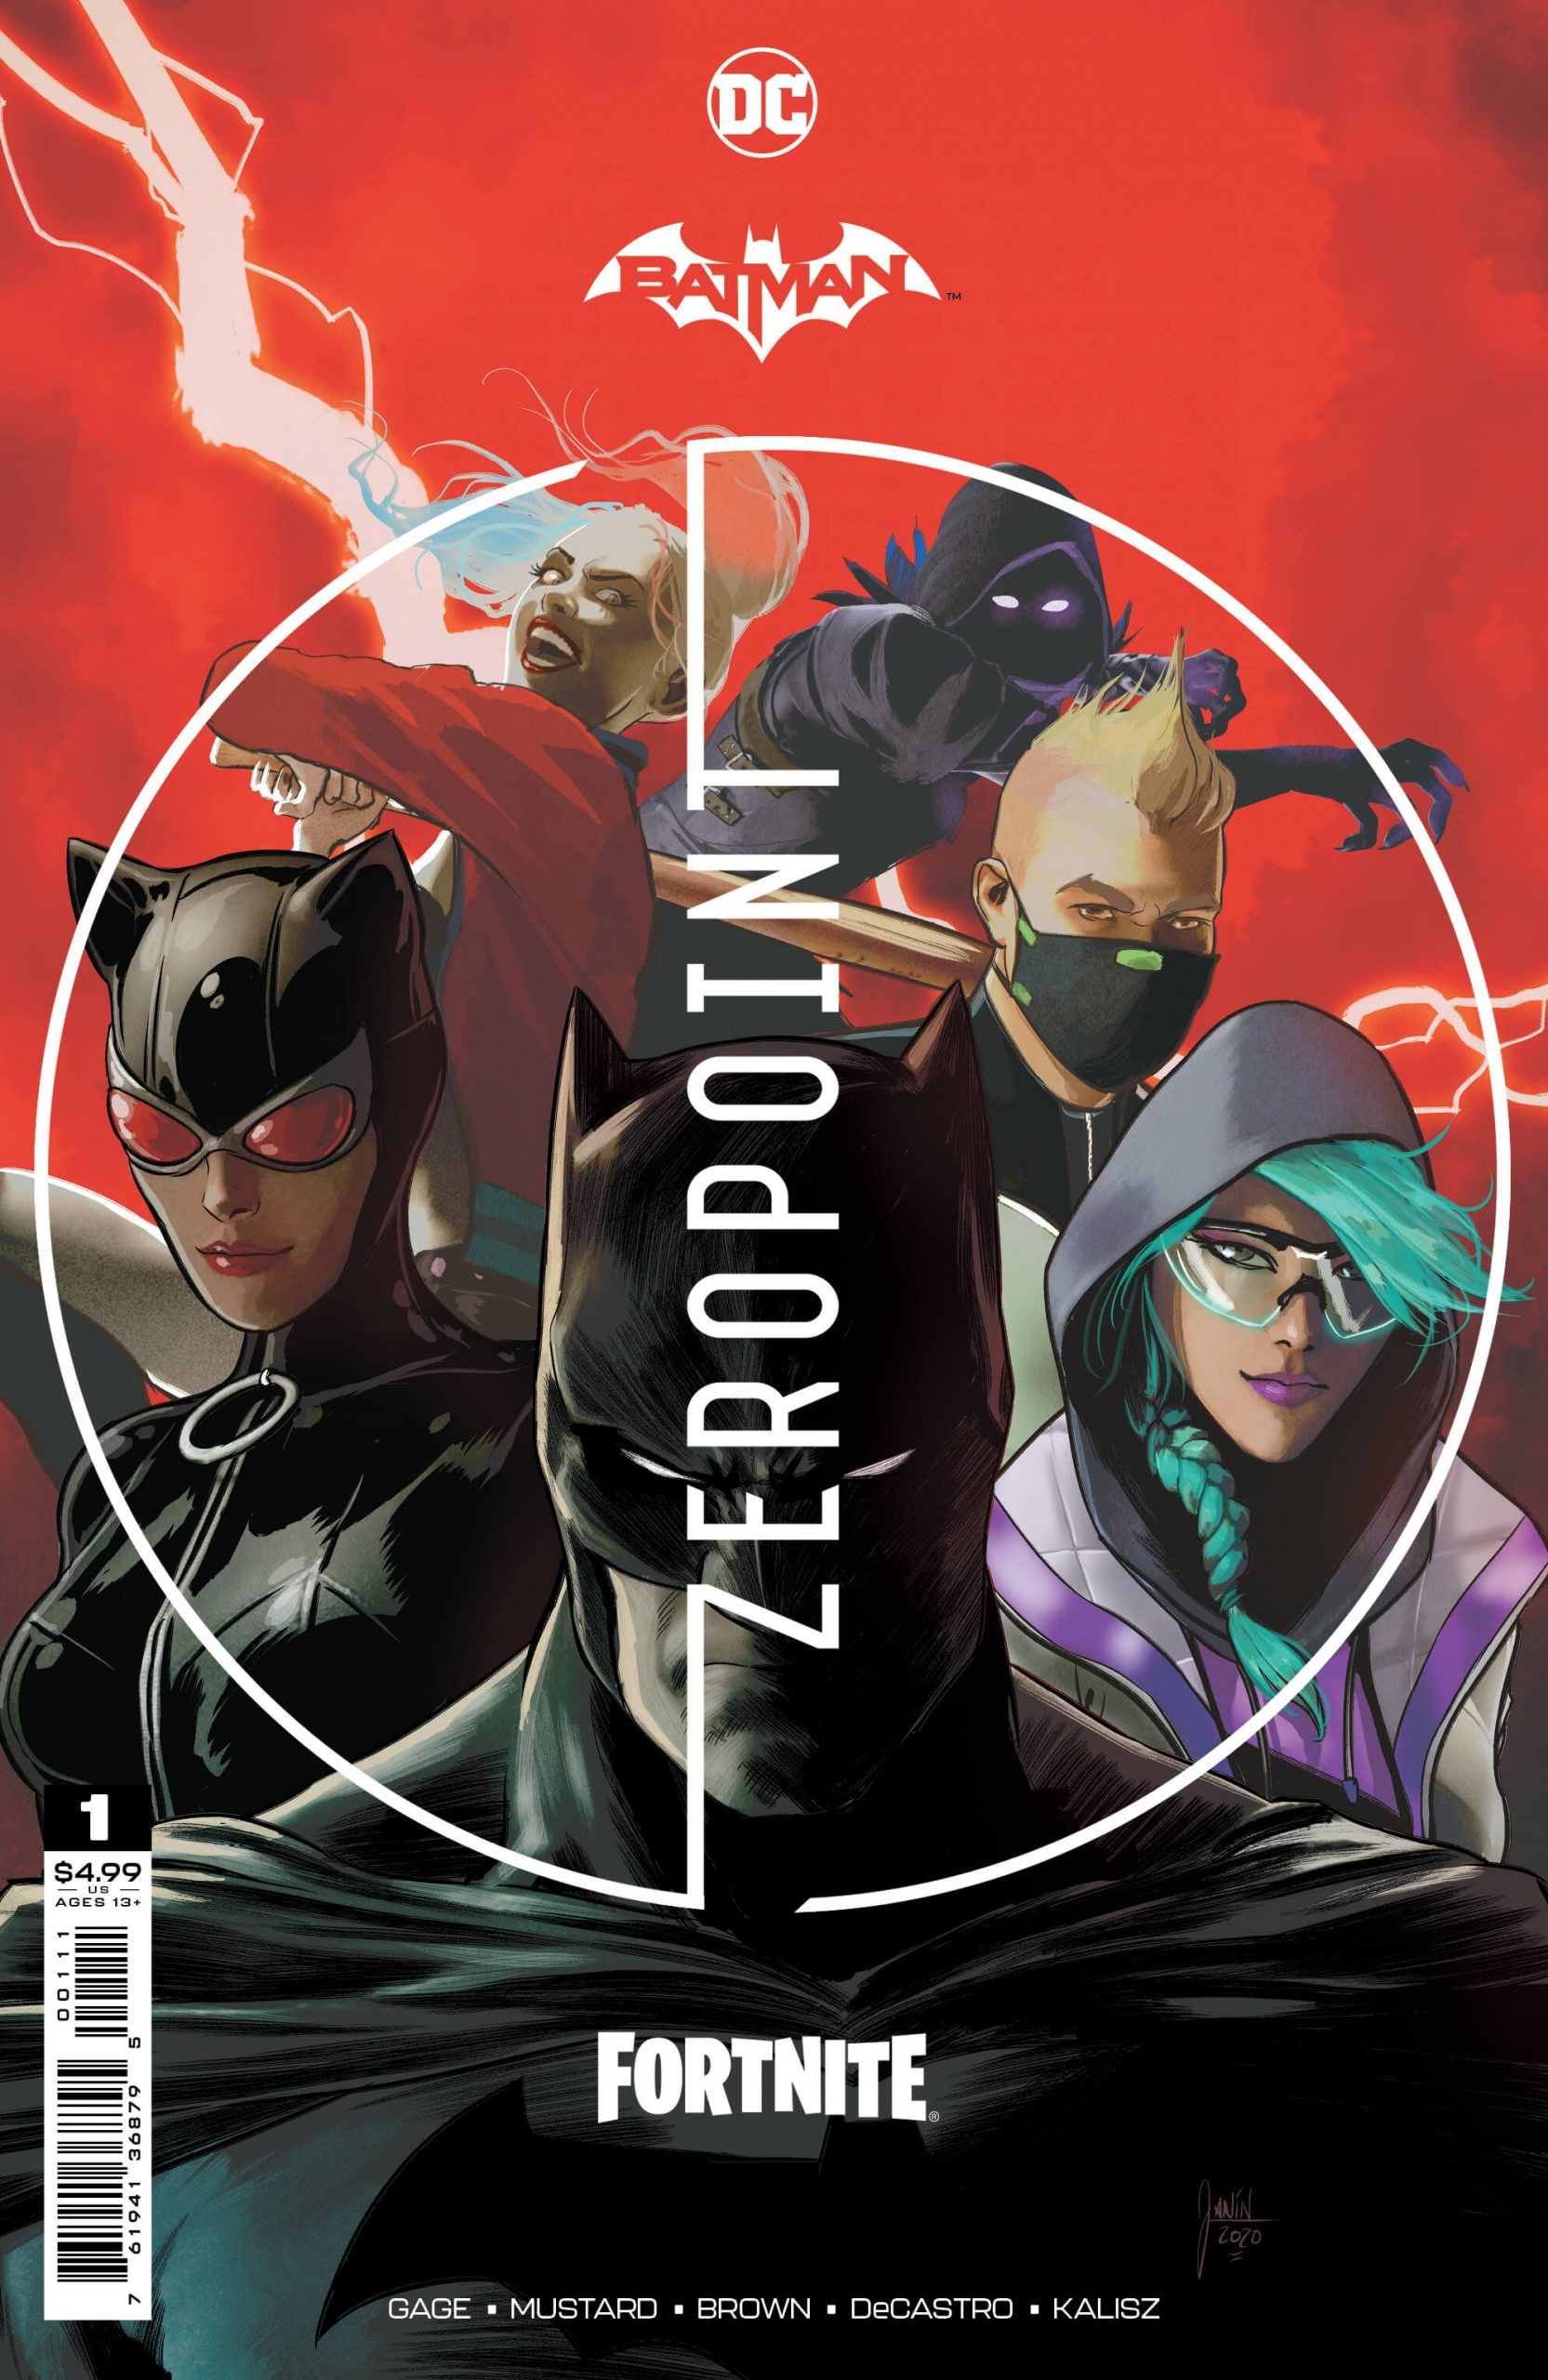 UNIVERSES COLLIDE: BATMAN/FORTNITE: ZERO POINT - NEW LIMITED-EDITION COMIC BOOK SERIES ARRIVES APRIL 20